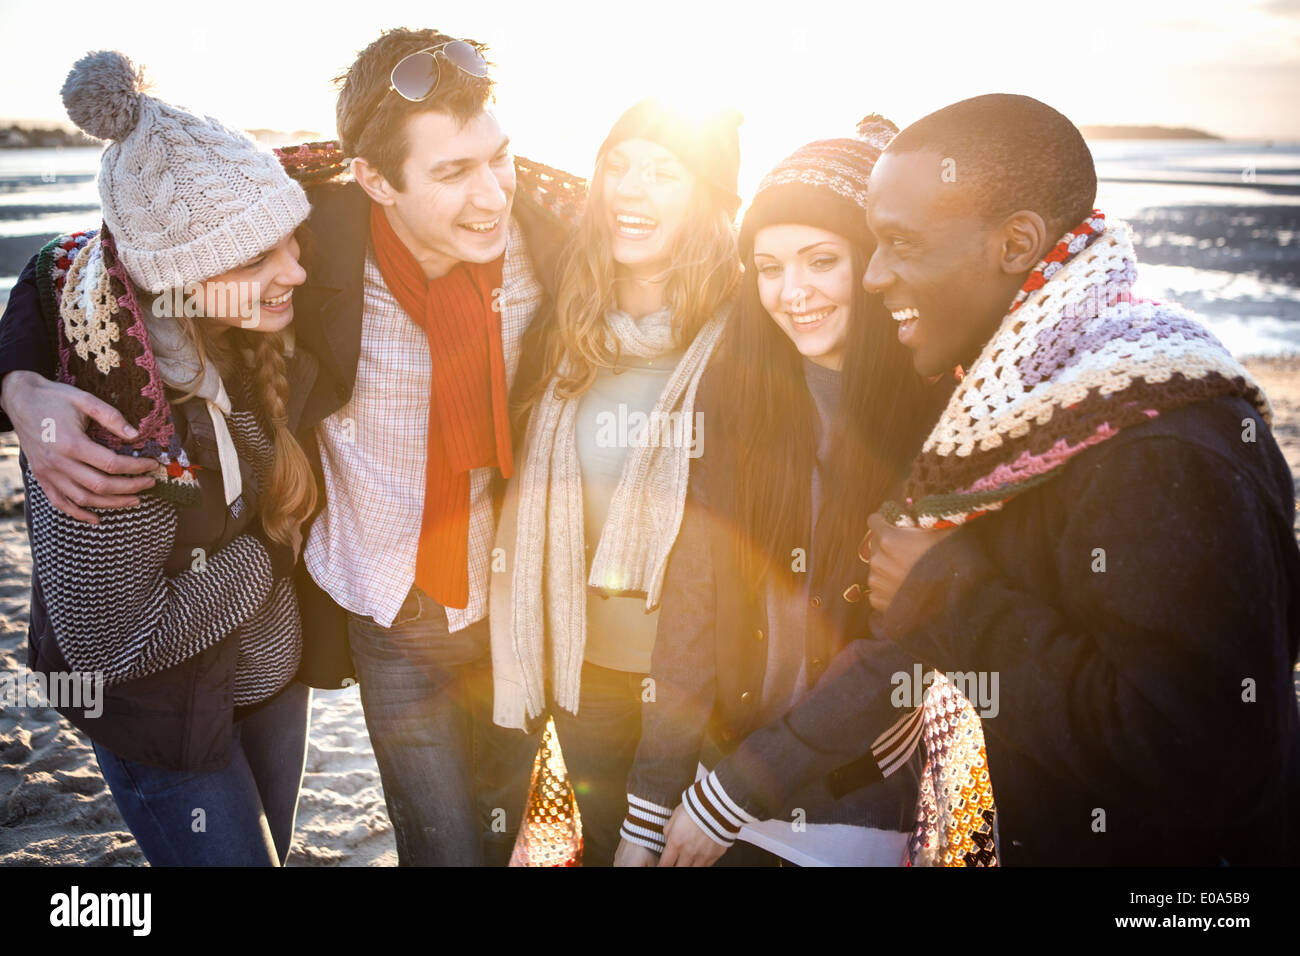 Five adult friends wrapped in a blanket on the beach - Stock Image